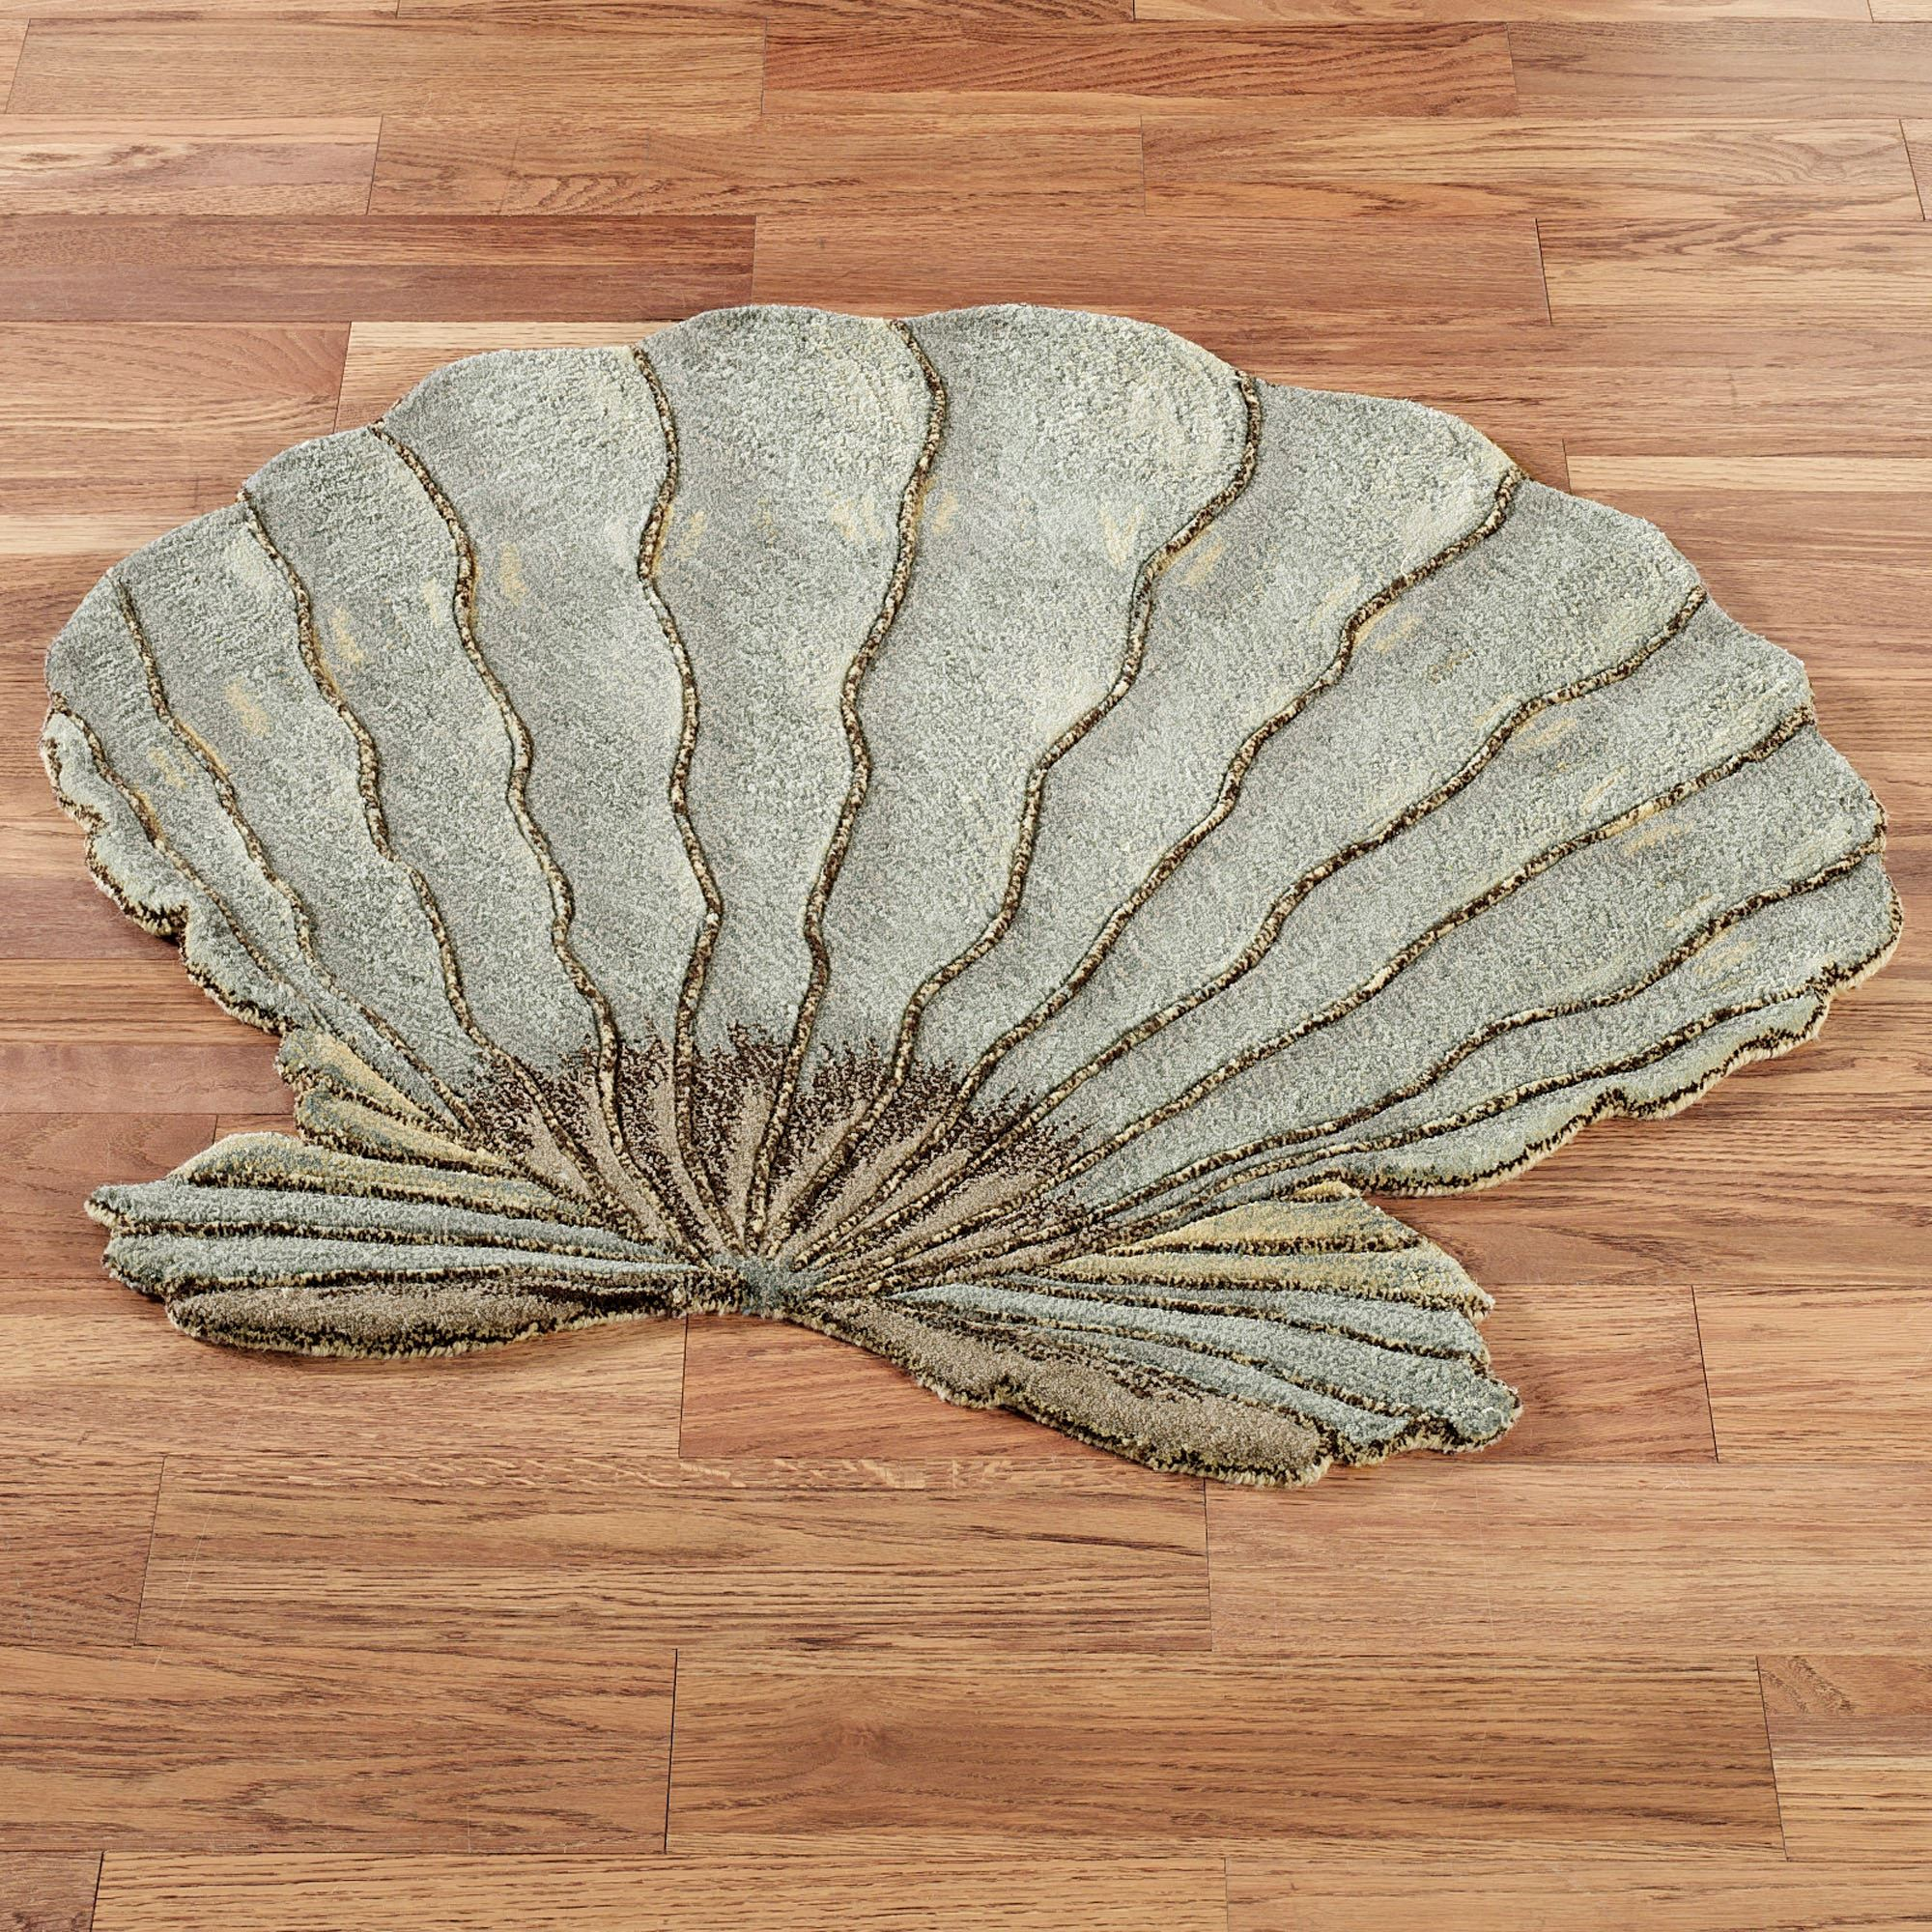 Fluted Scallop Seashell Shaped Wool Rugs